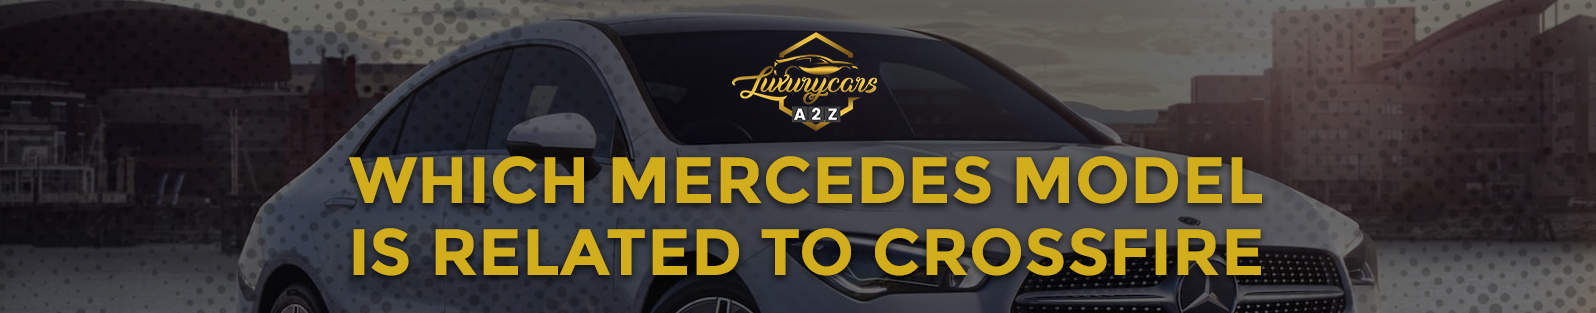 which mercedes model is related to crossfire